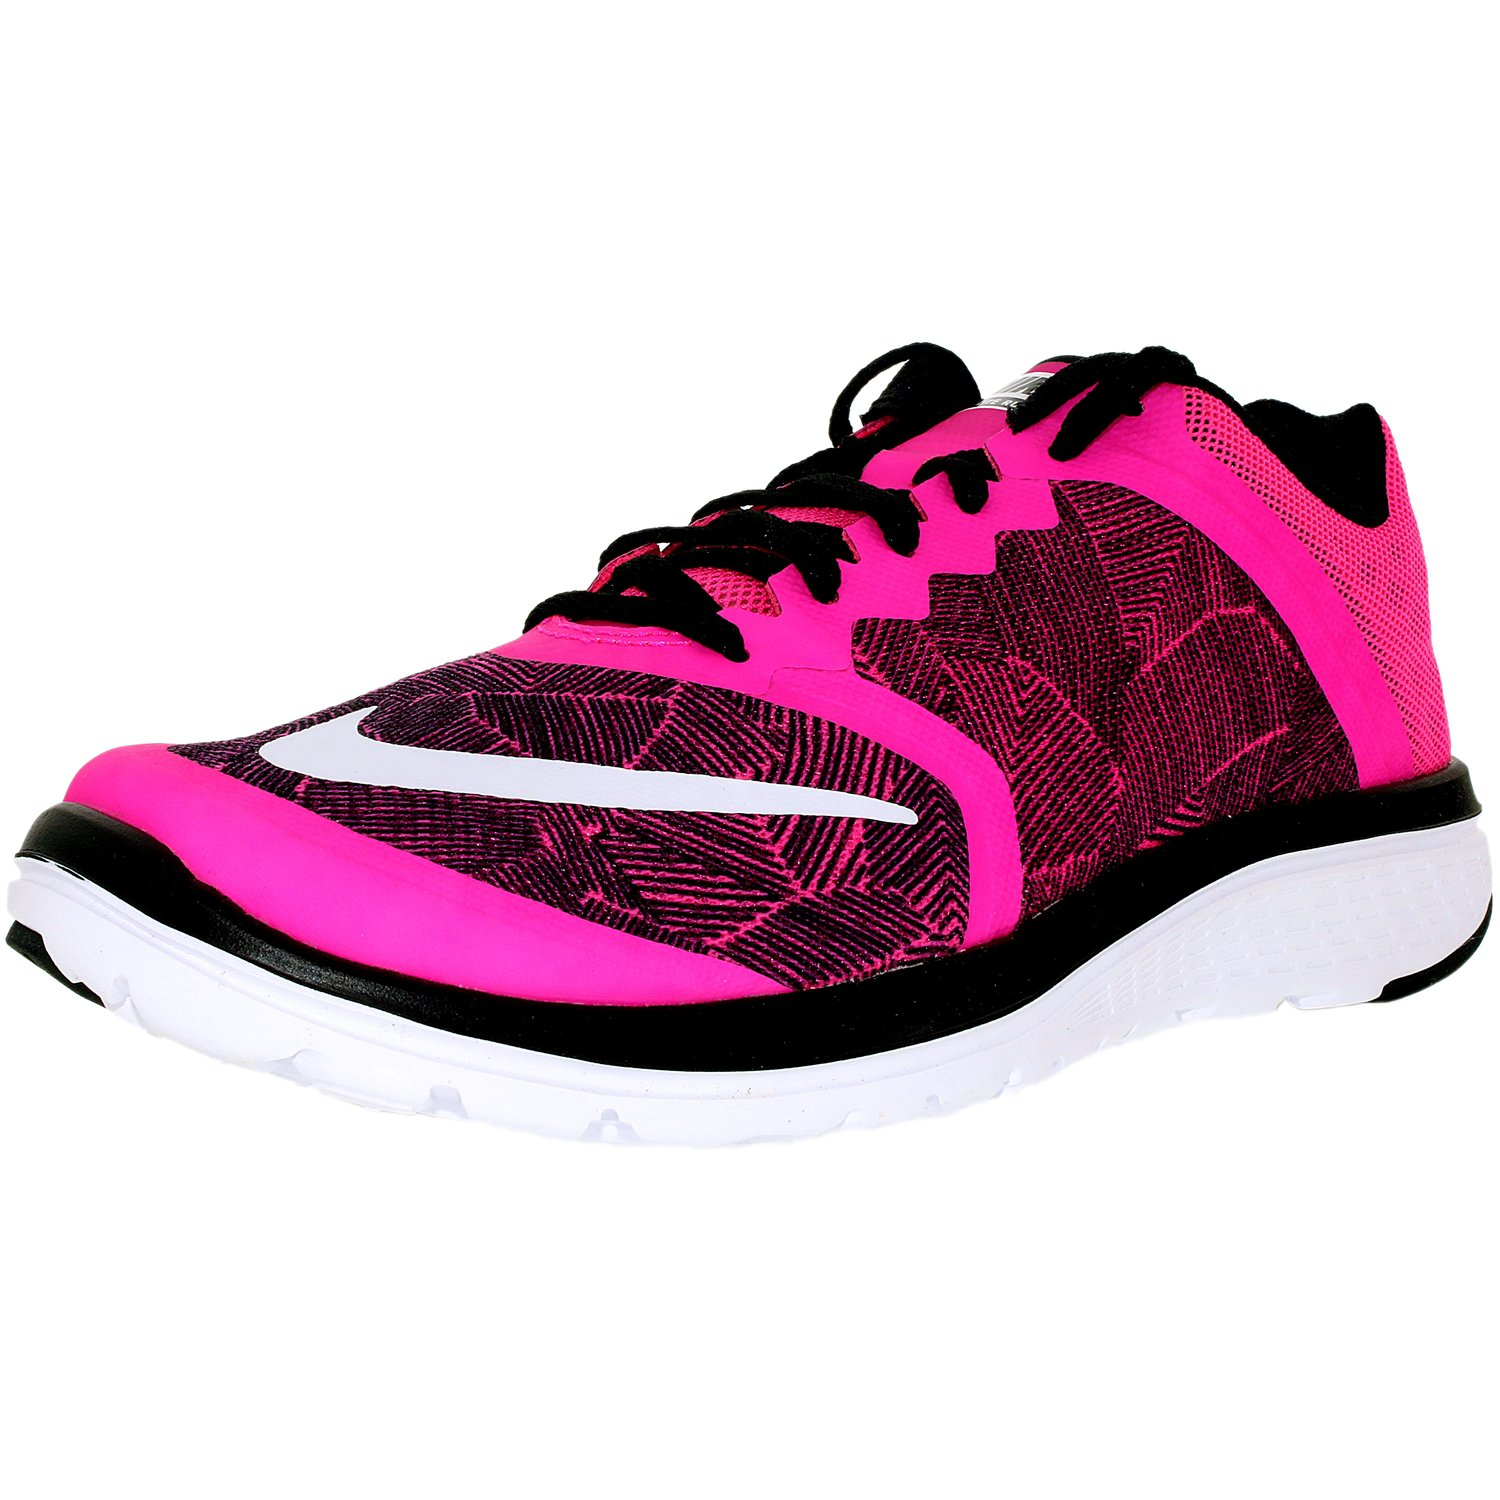 wholesale dealer 88e0e aa225 Nike Women's Fs Lite Run 3 Print W Ankle-High Mesh Running Shoe